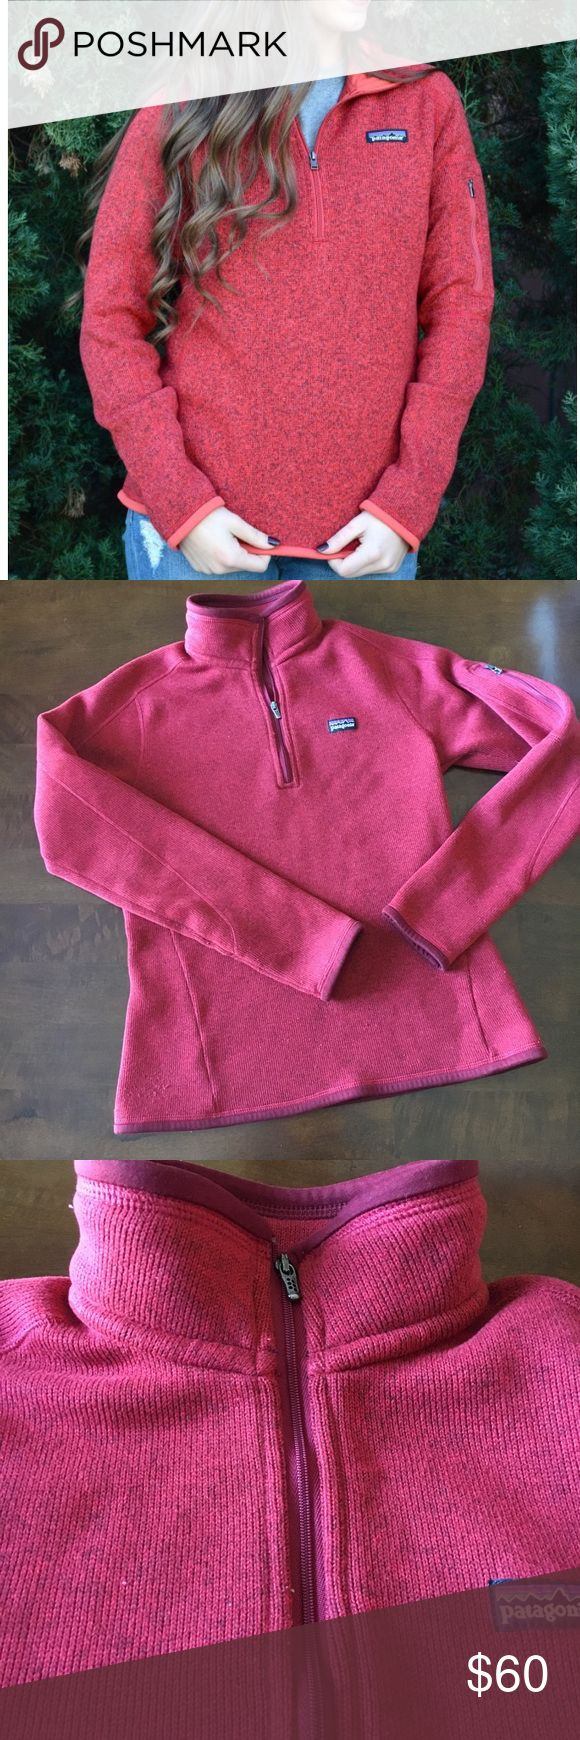 """Patagonia Better Sweater Quarter Zip Red Sz S Excellent used condition. Deep red Patagonia Quarter Zip Better Sweater. Soft and cozy and features zip compartment on left sleeve. Please note stock photo differs from product for sale-piping on product is maroon not orange. Selling because this is too small for me 😭. Approx measurements: armpit to armpit: 16"""", shoulder to hem: 23"""", sleeve length: 18"""". No stains or holes. Smoke free home. Will trade for medium in same color and style! Patagonia…"""